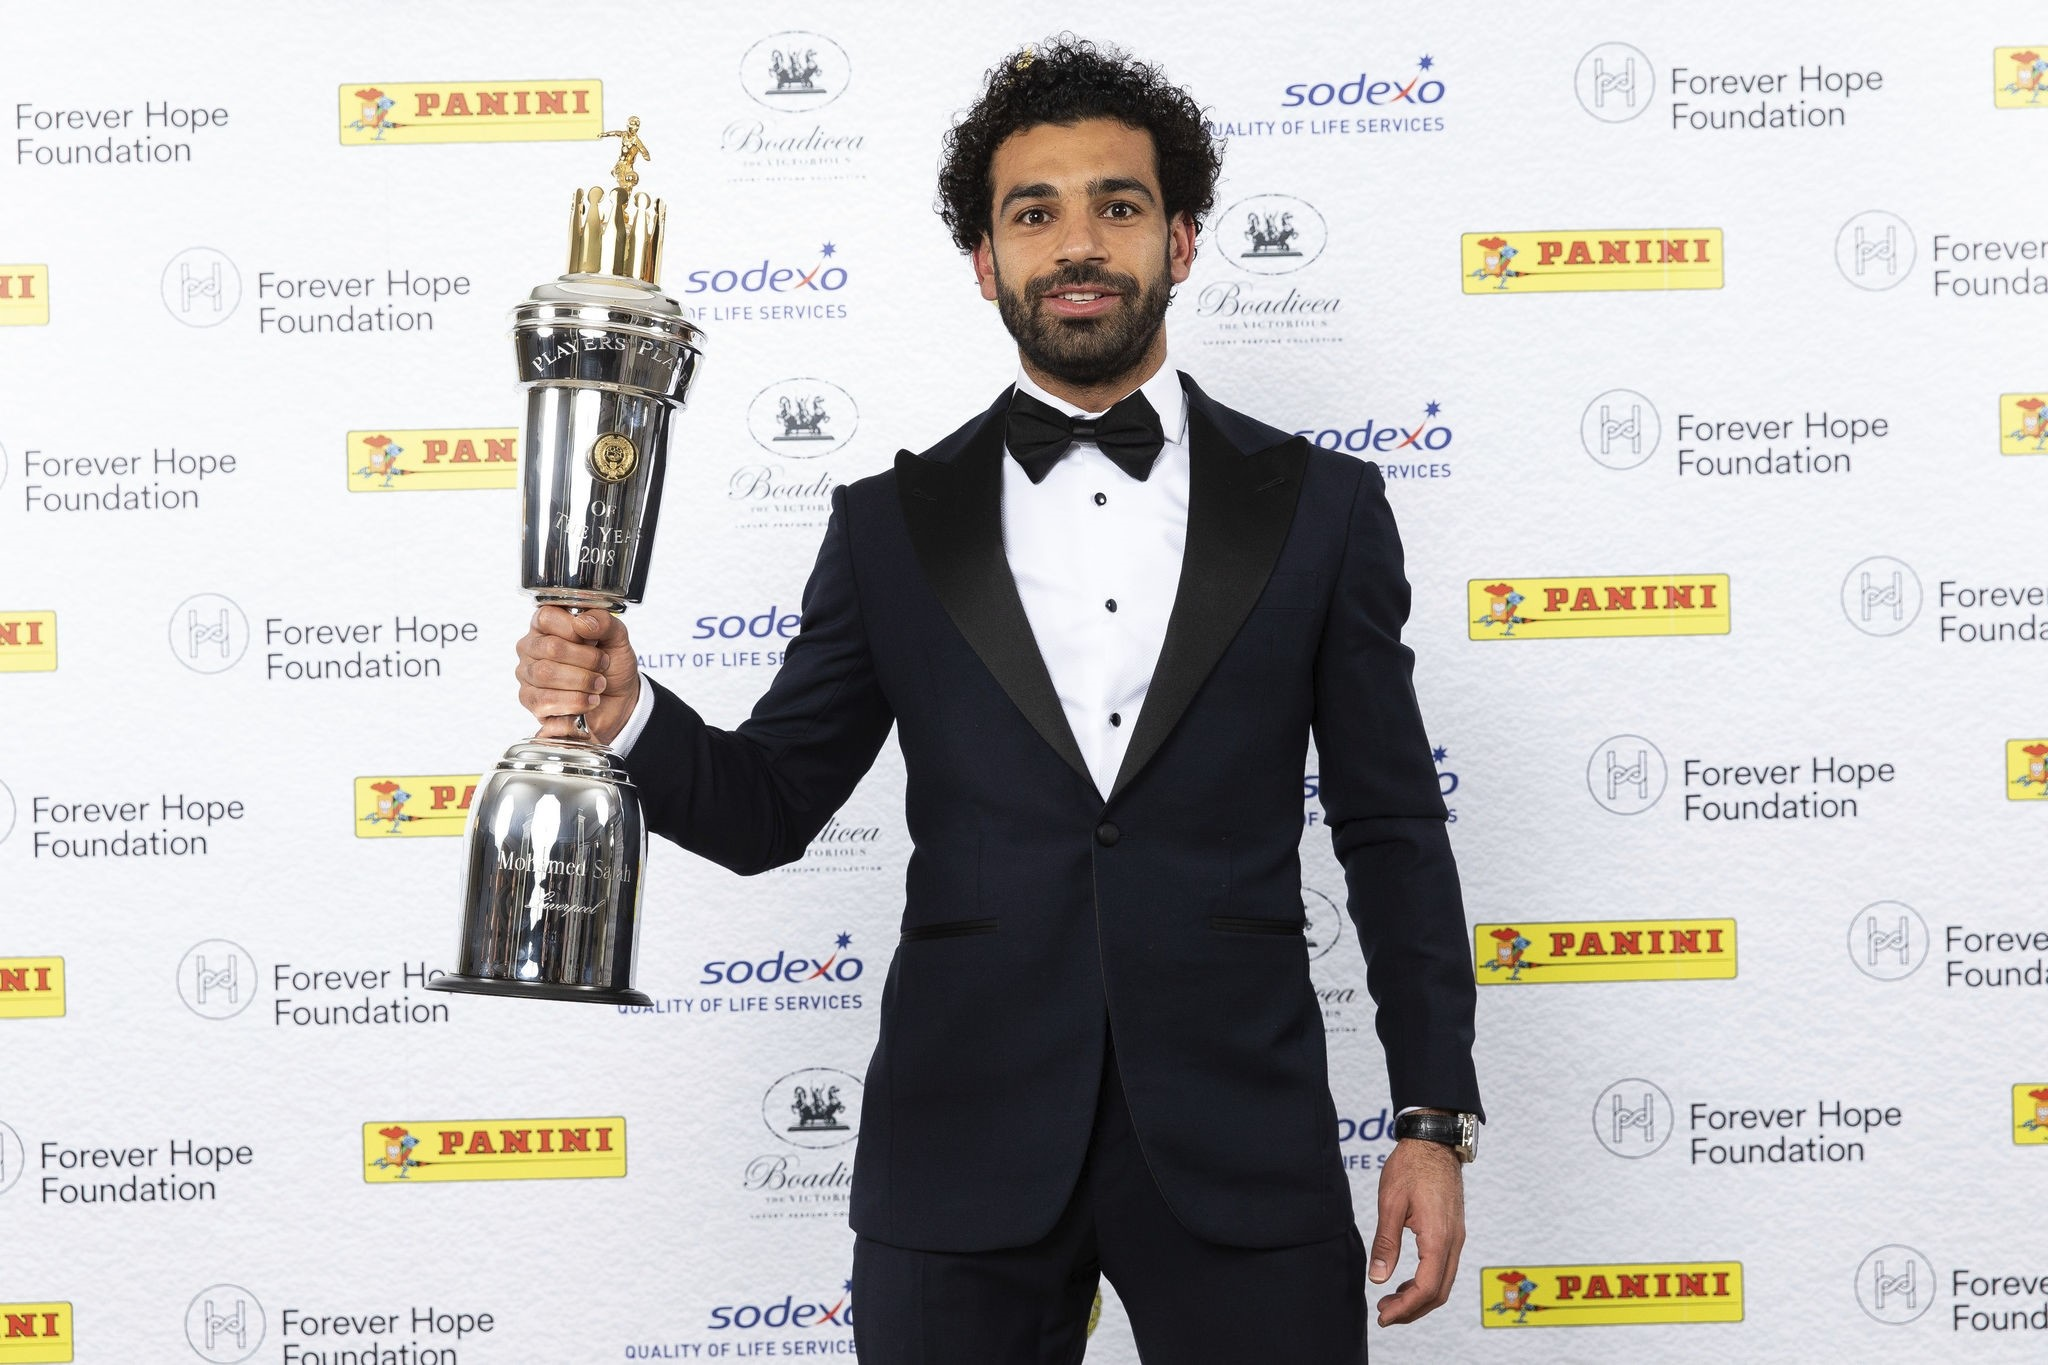 Mohamed Salah poses with the PFA Player Of The Year Award Trophy during the 2018 PFA Awards at the Grosvenor House Hotel, London, Sunday April 22, 2018. (AP Photo)